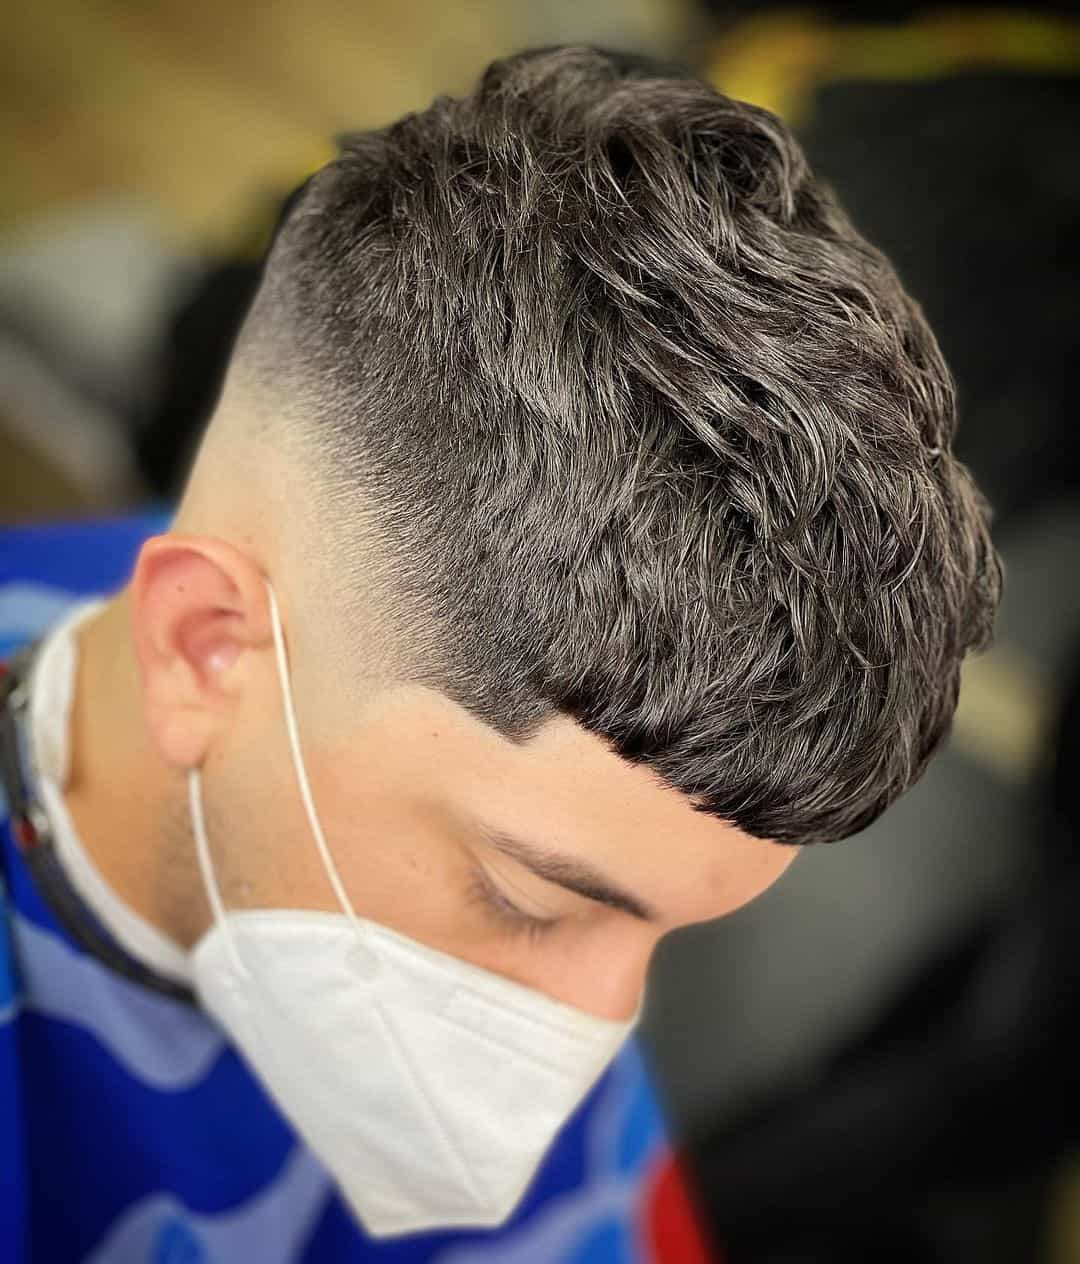 Precise Cut For Men With Round Faces